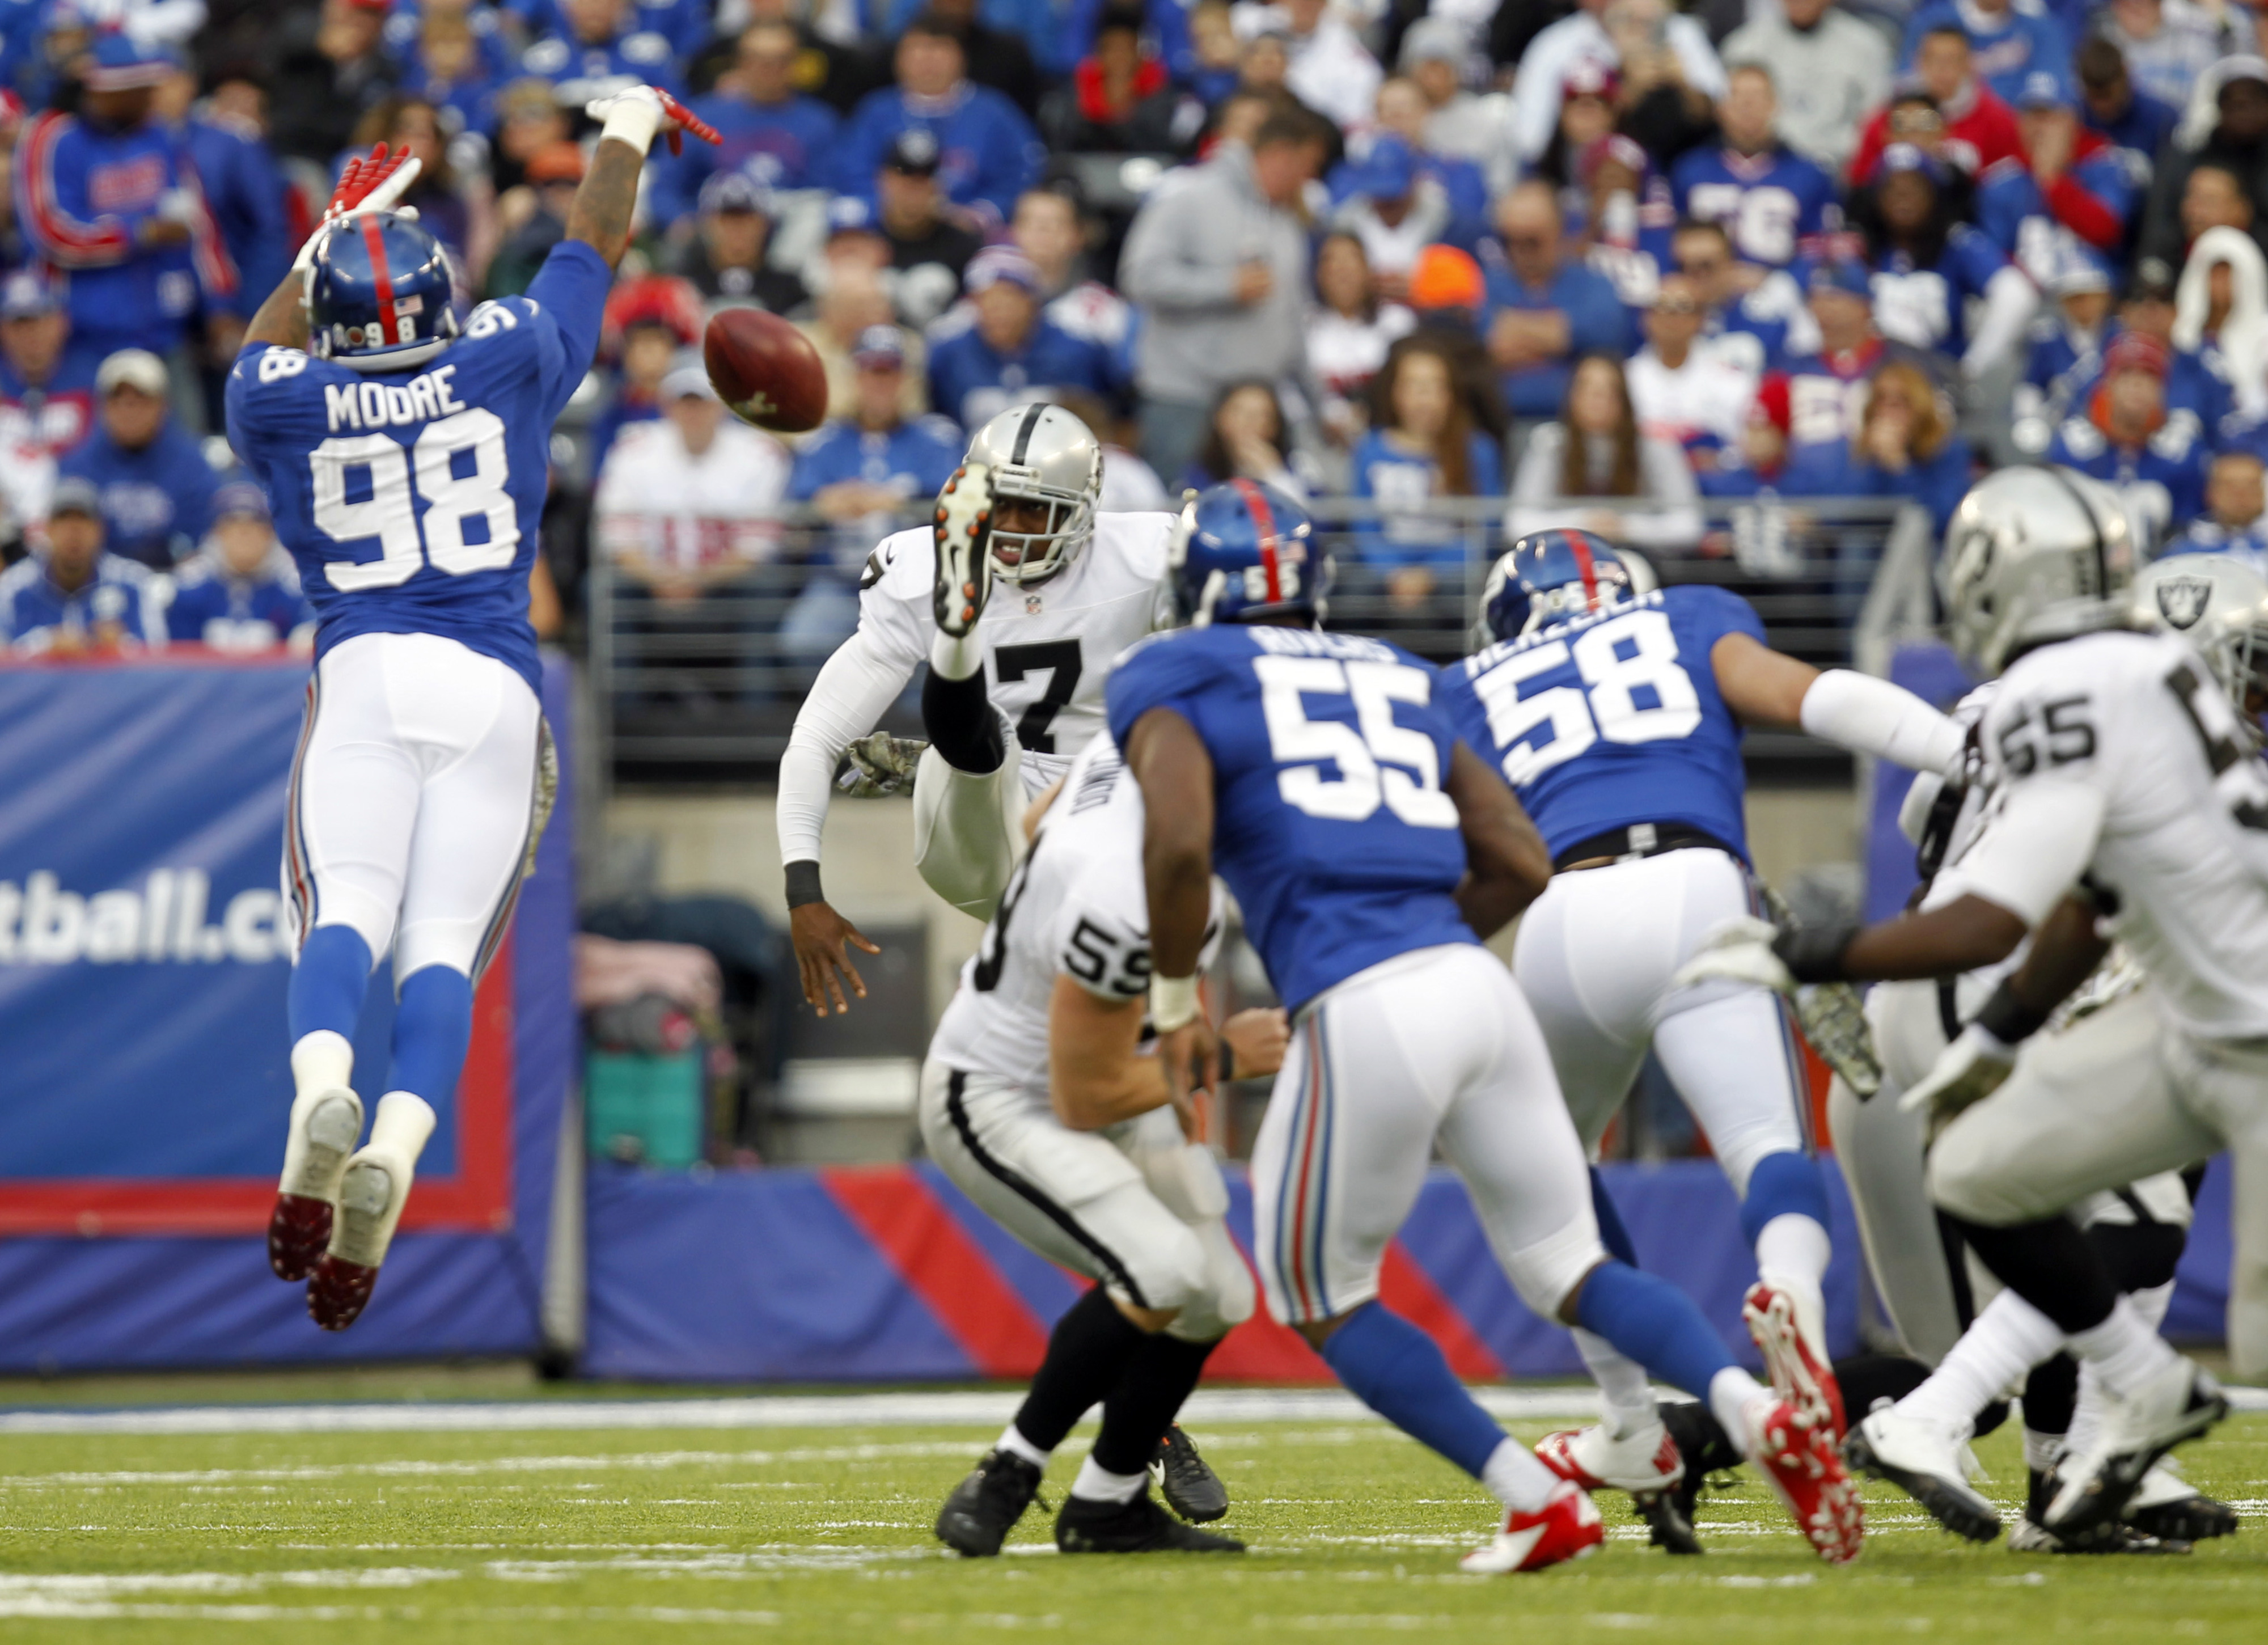 Damontre Moore blocks a punt against the Oakland Raiders